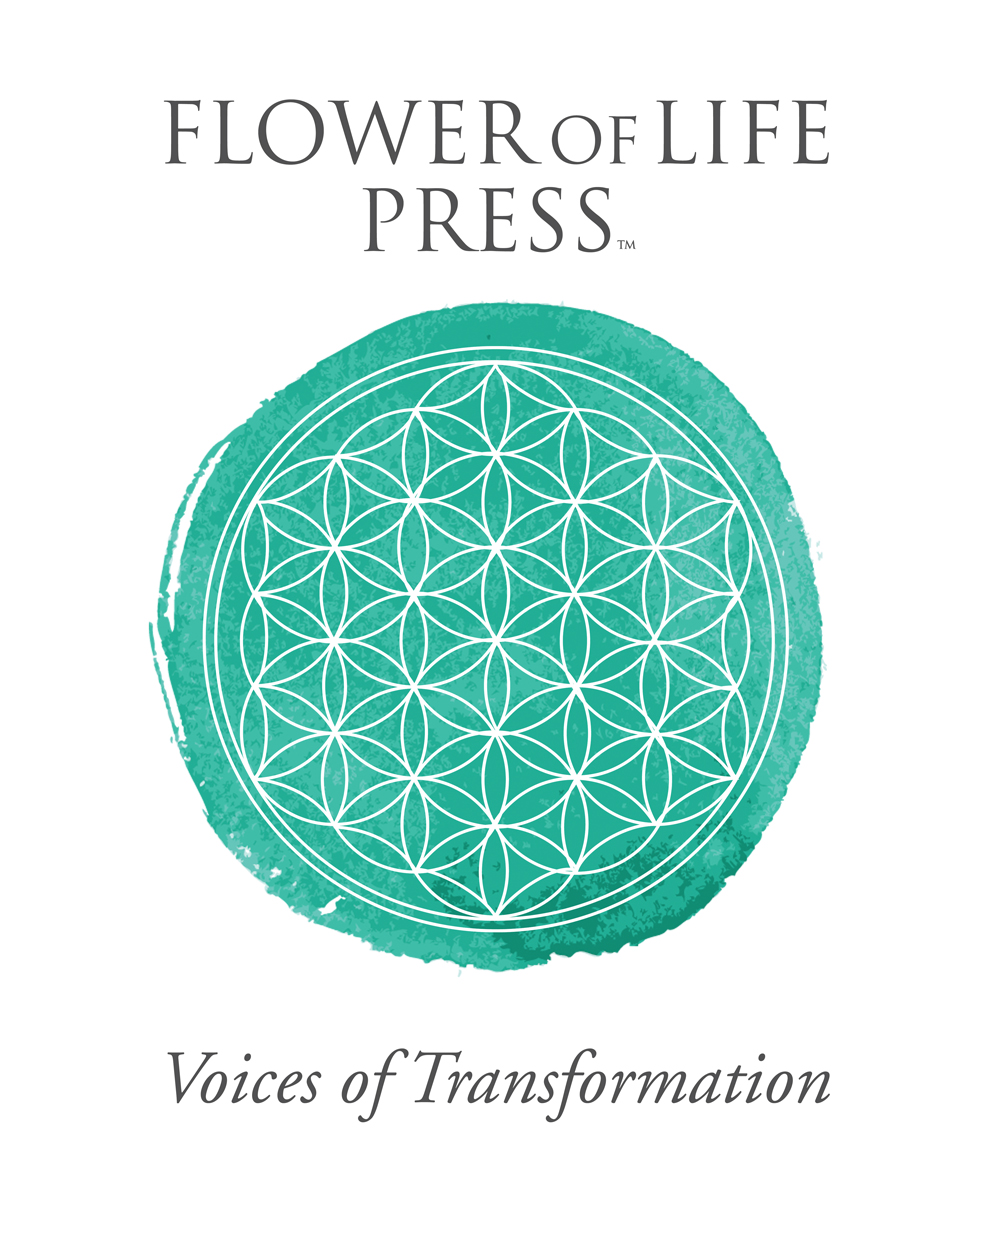 Flower of Life Press